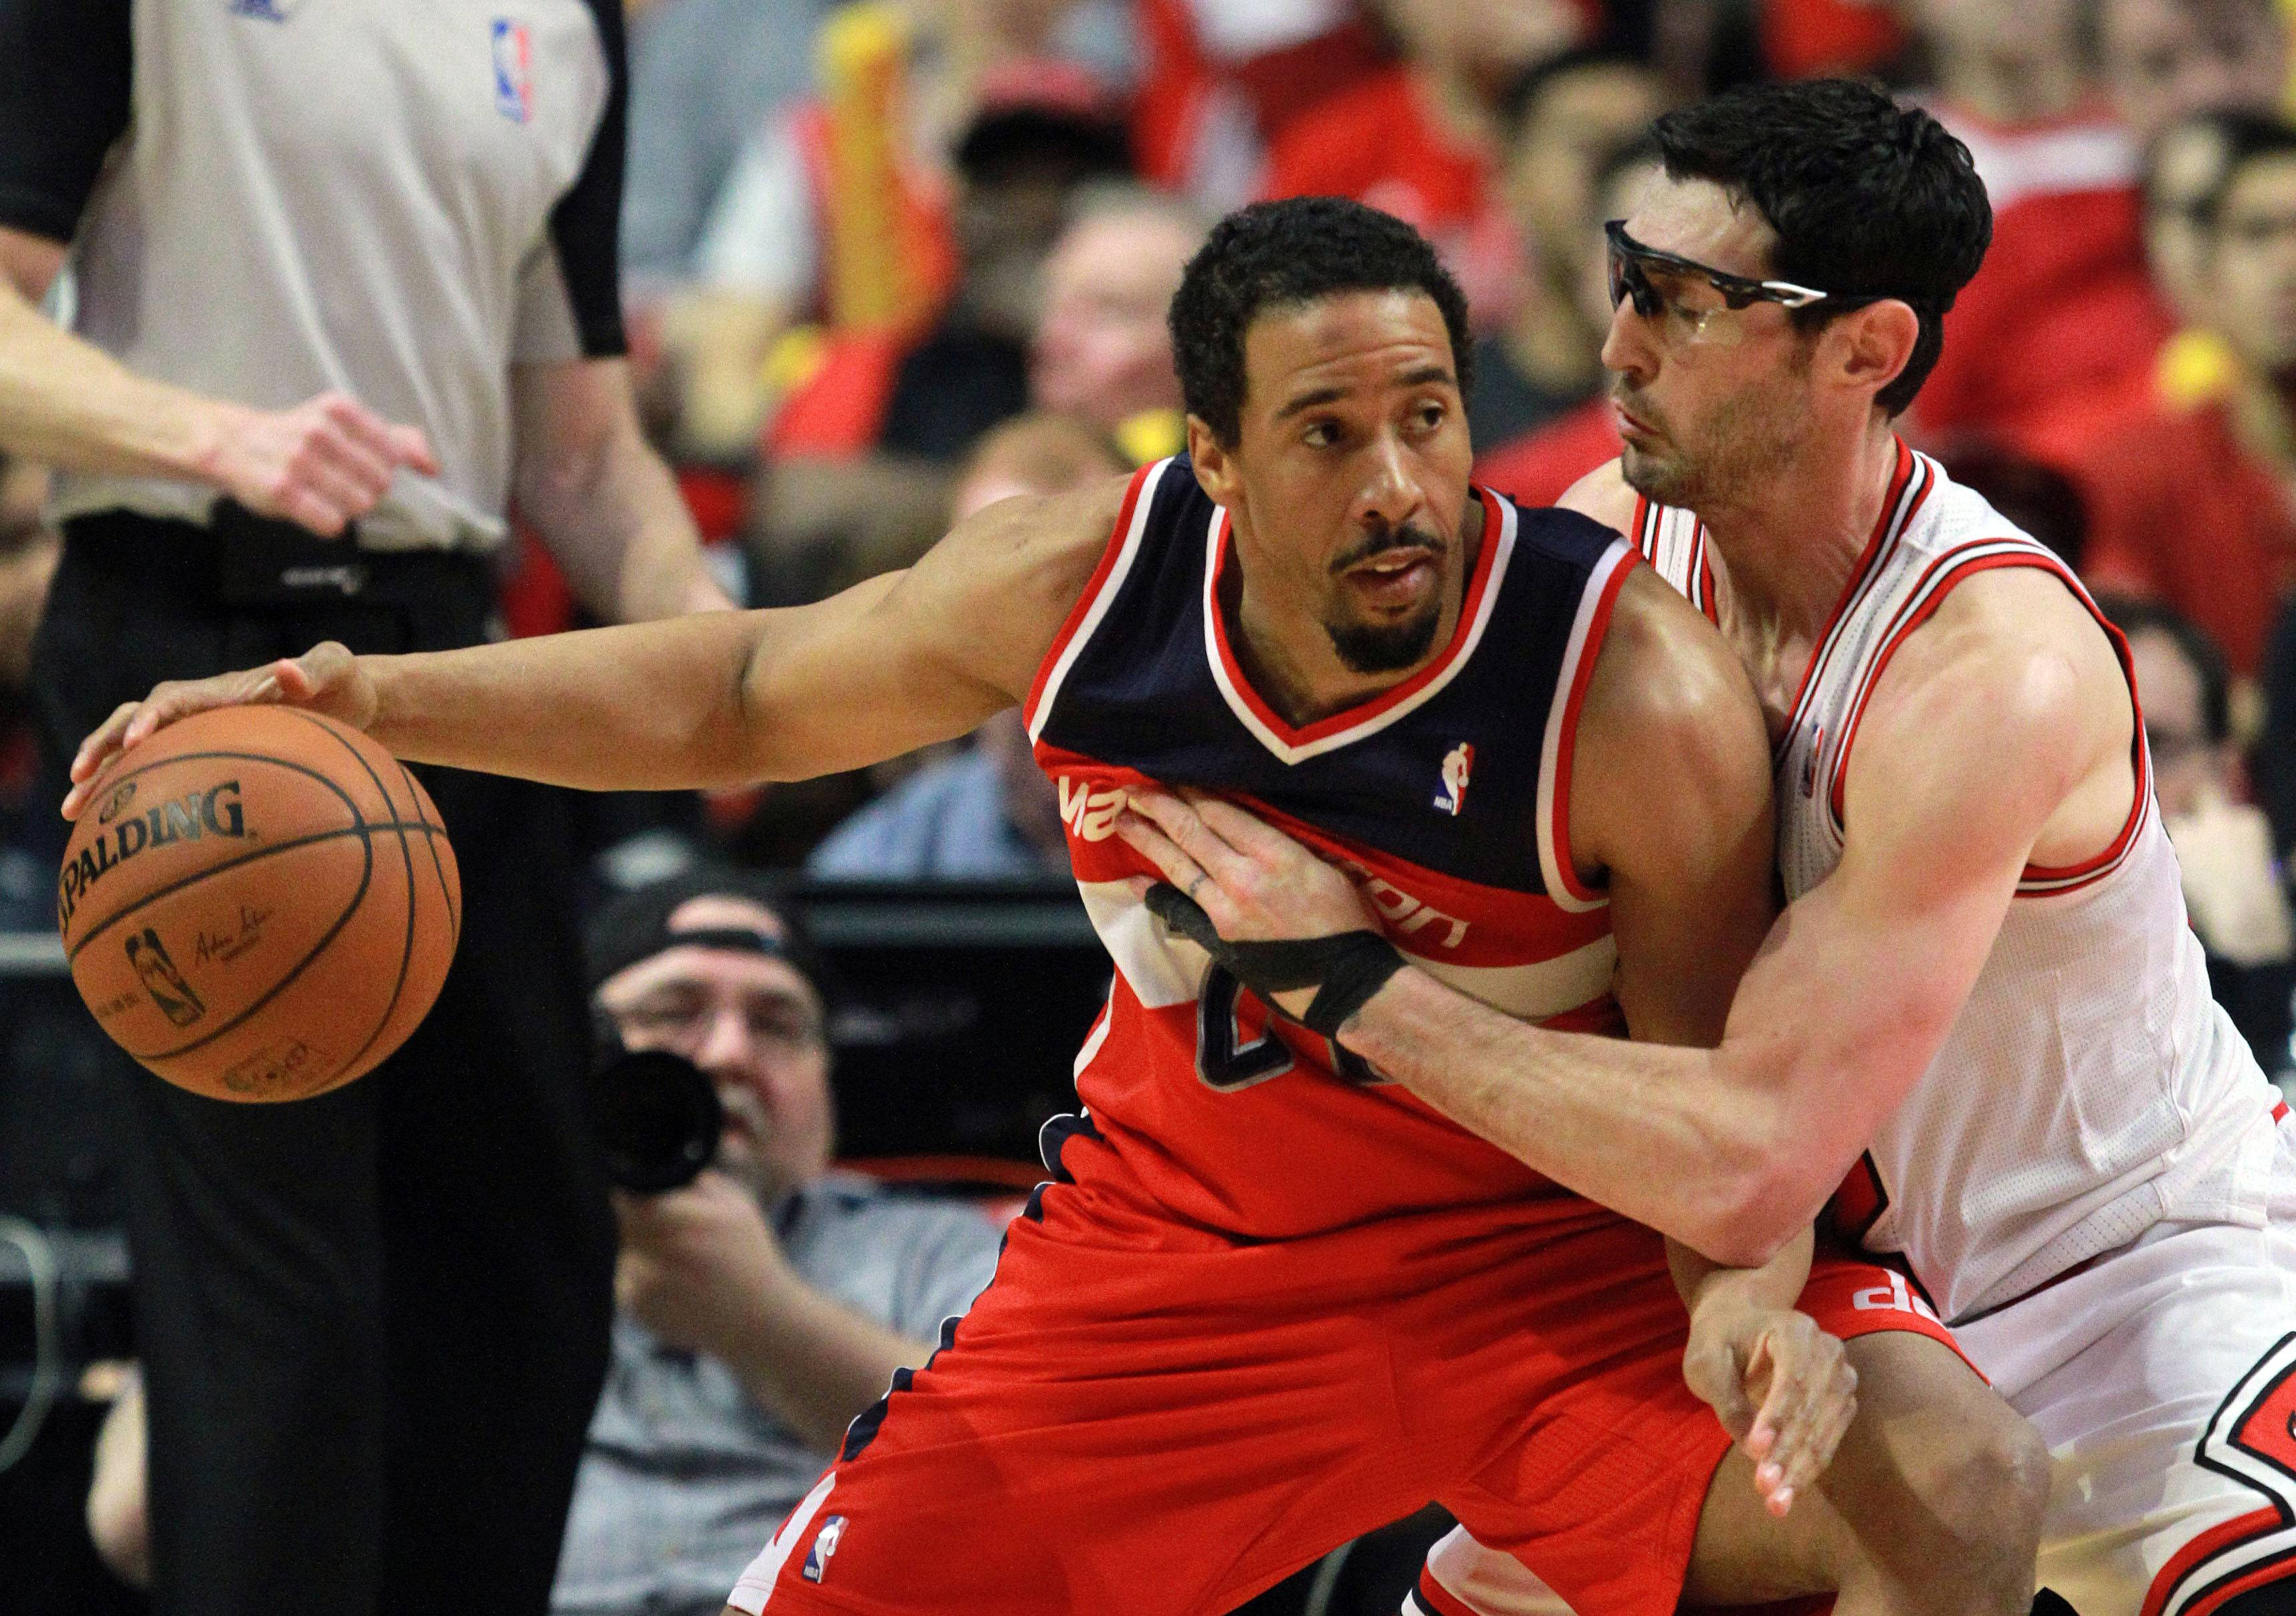 Washington Wizards guard Andre Miller backs in on Chicago Bulls guard Kirk Hinrich.